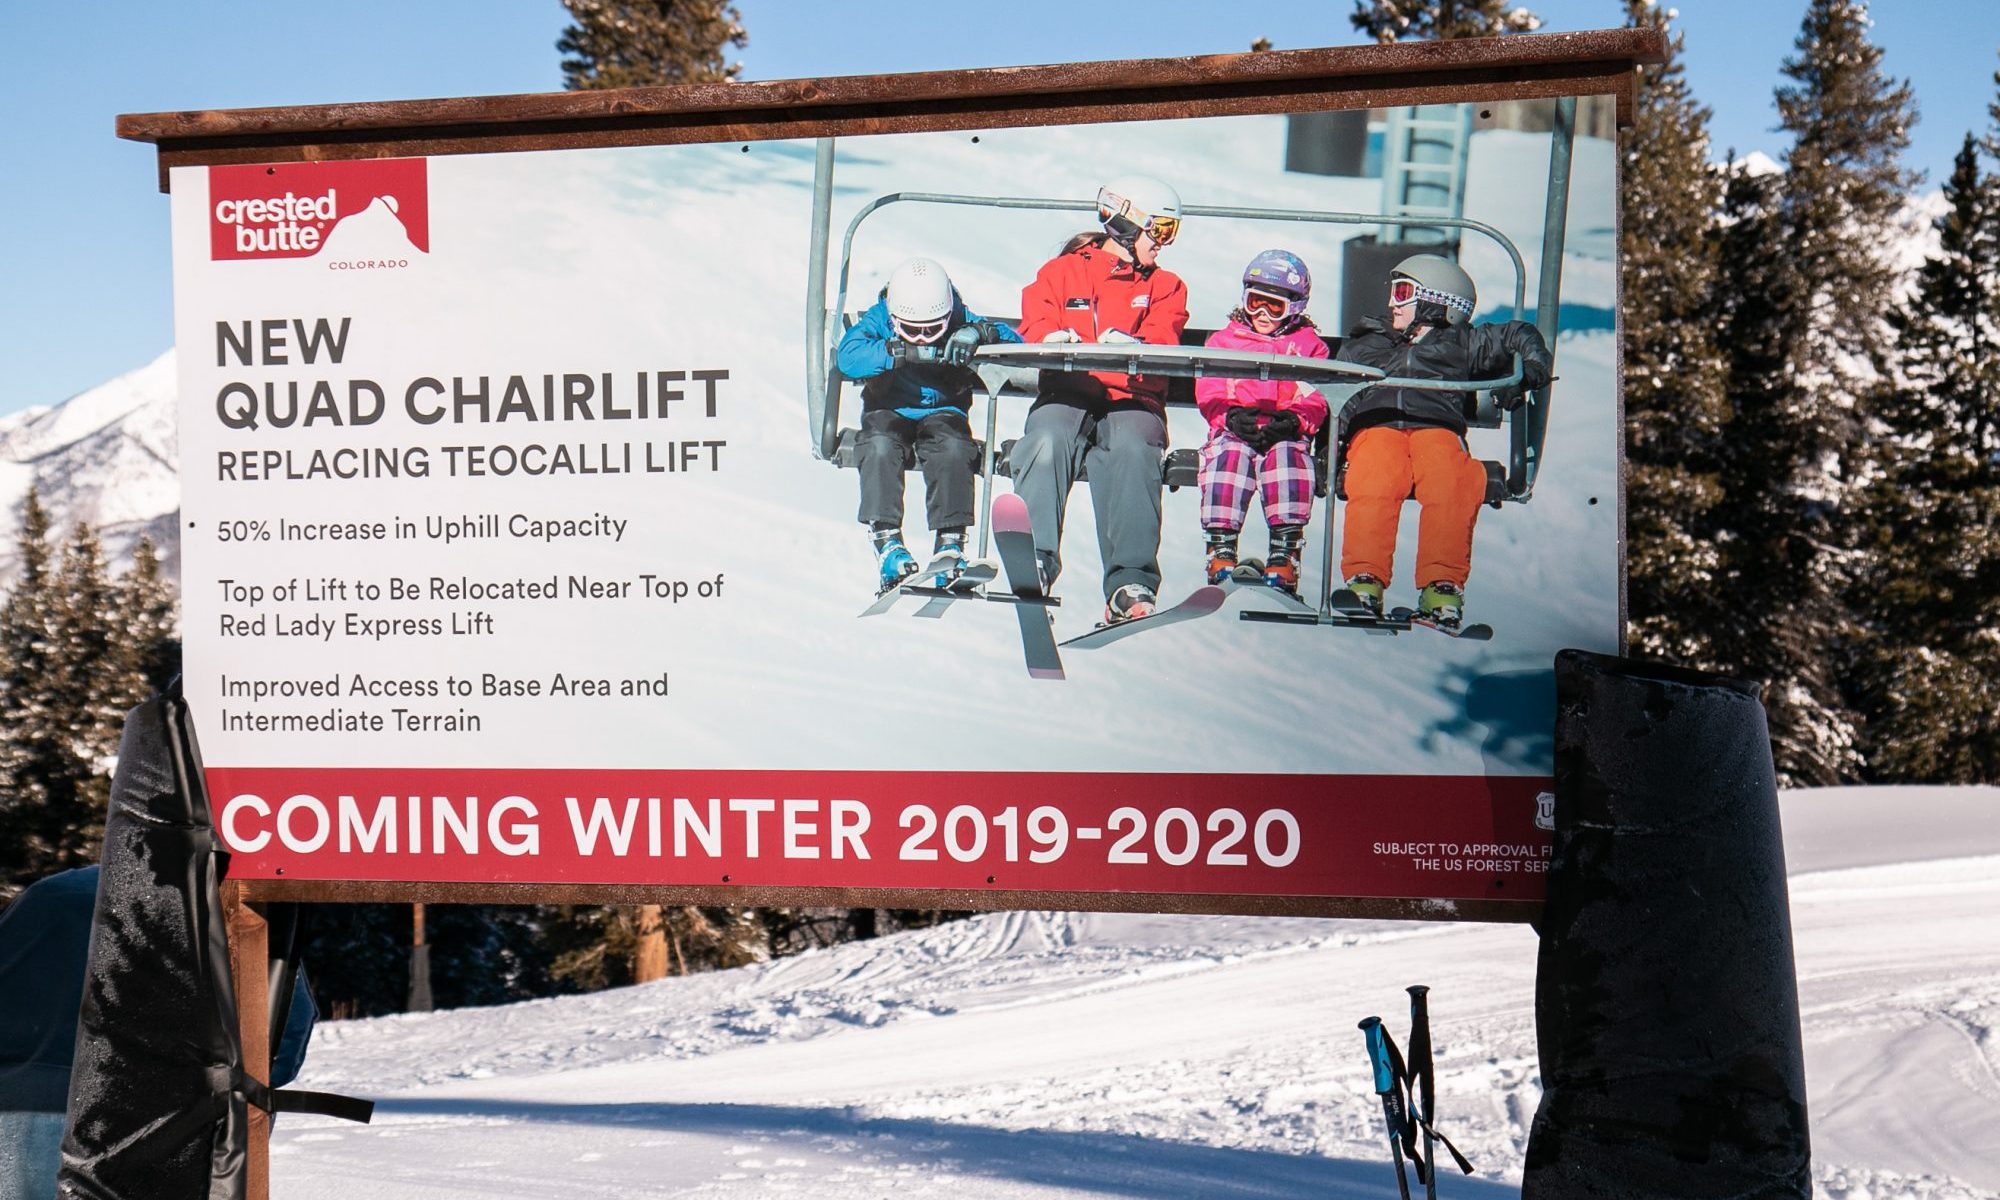 Crested Butte Mountain Resort- Vanderlinden. Crested Butte Mountain Resort Announces Plans to Replace the Teocalli Lift for the 2019-20 Winter Season.